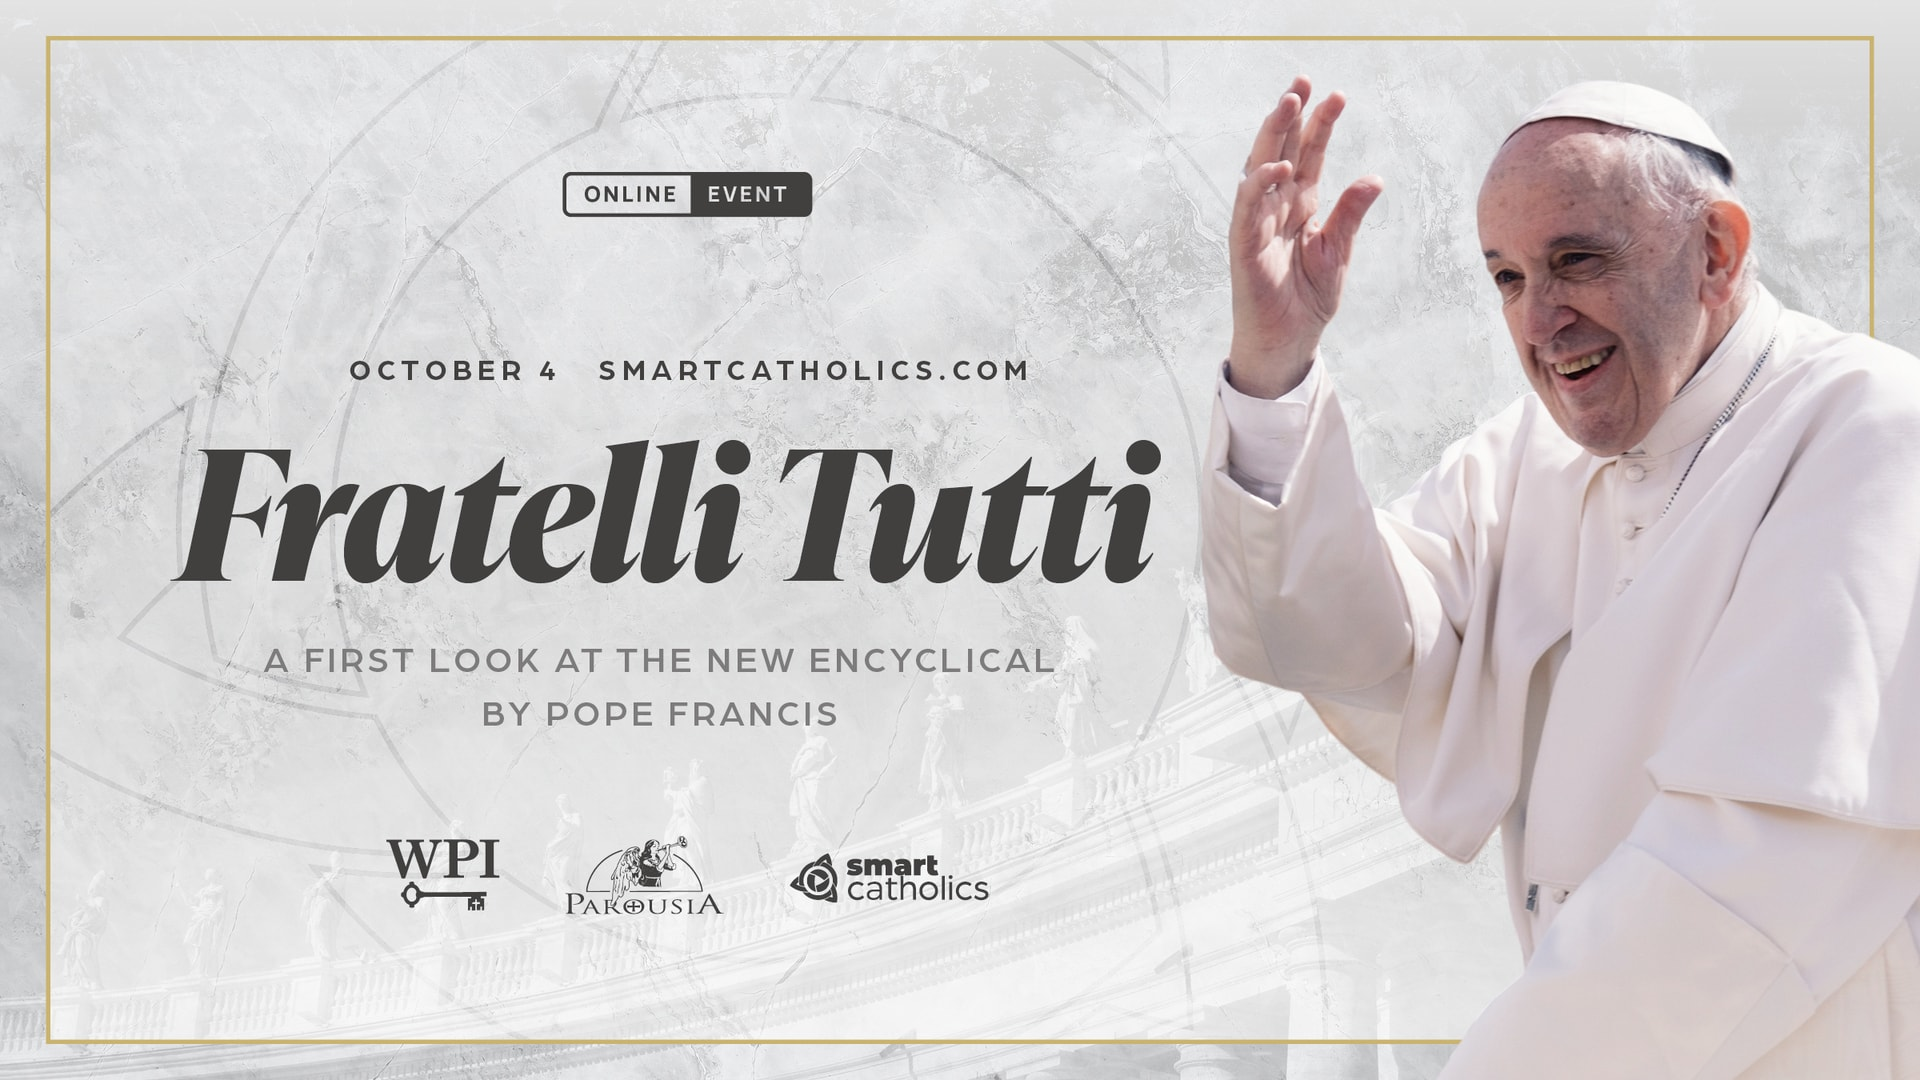 Fratelli Tutti: A First Look at the new encyclical by Pope Francis